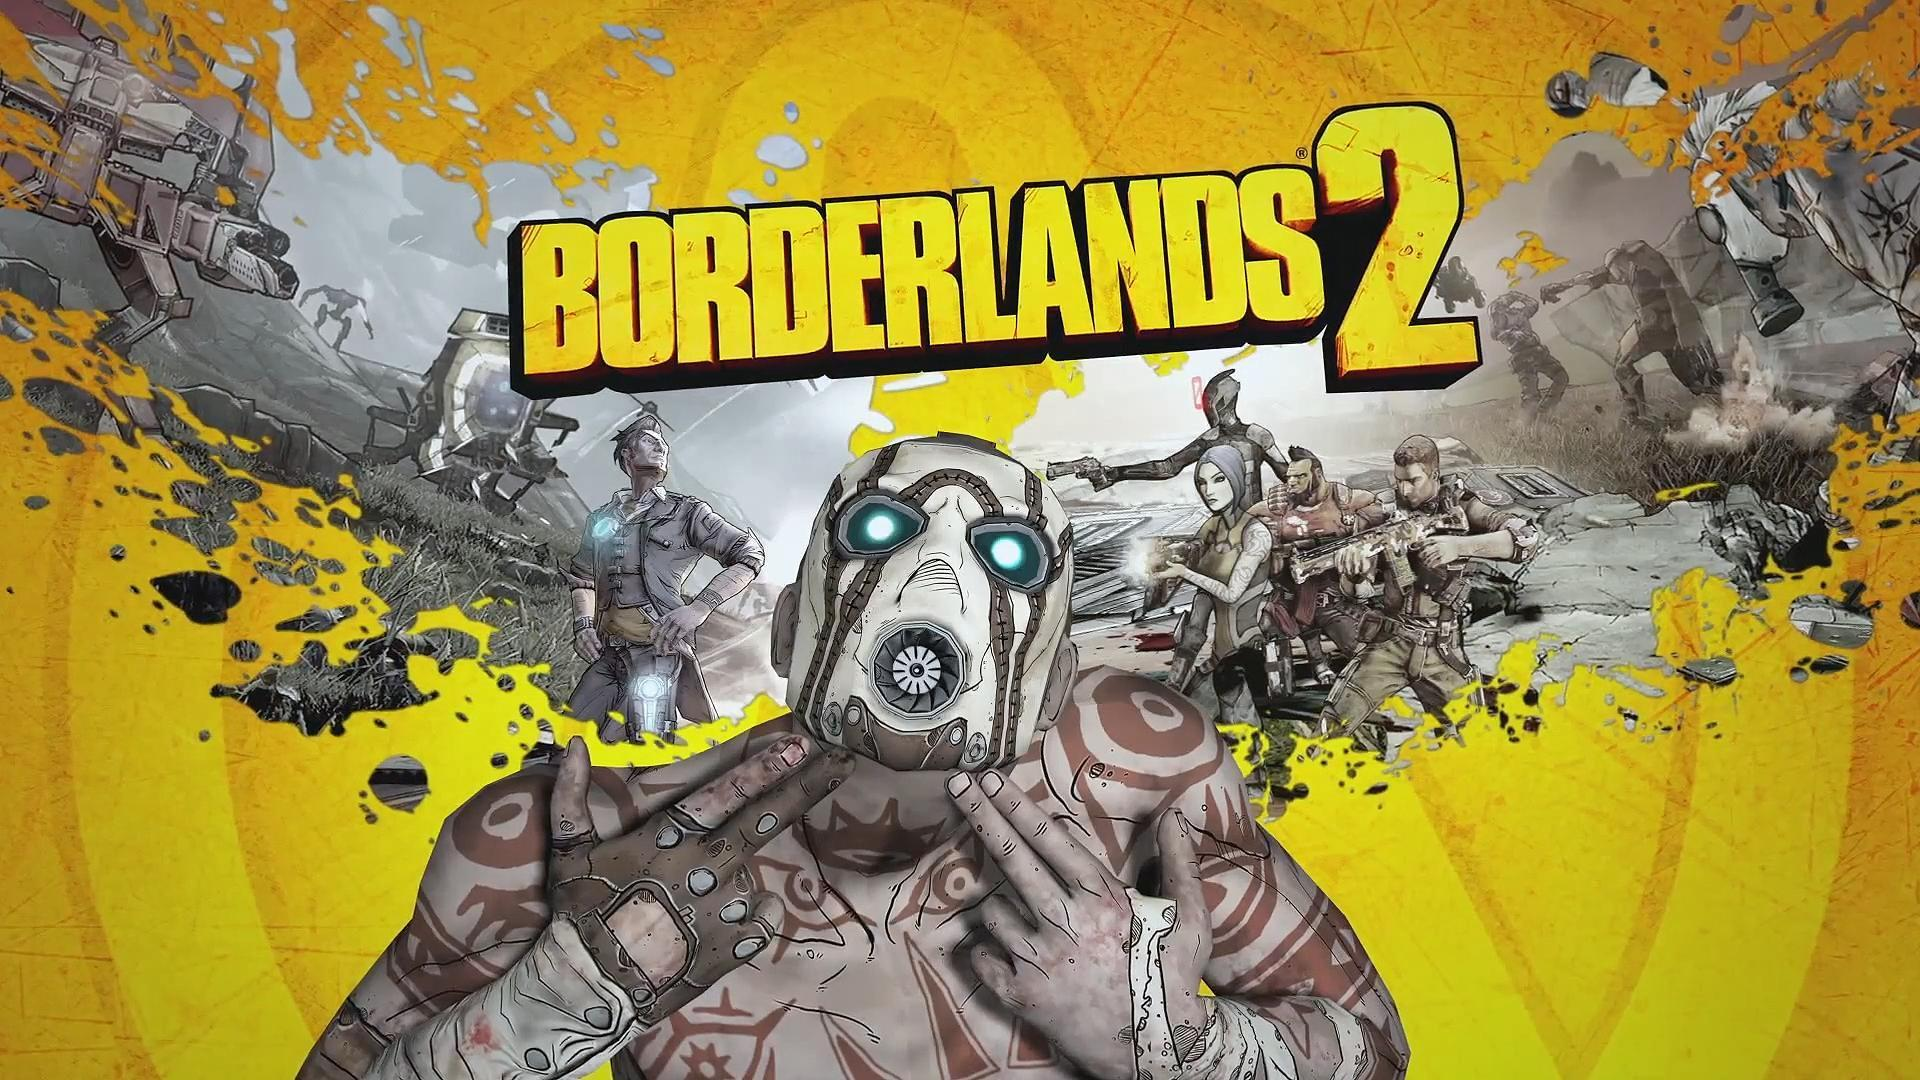 Borderlands 2 Wallpapers 1920x1080